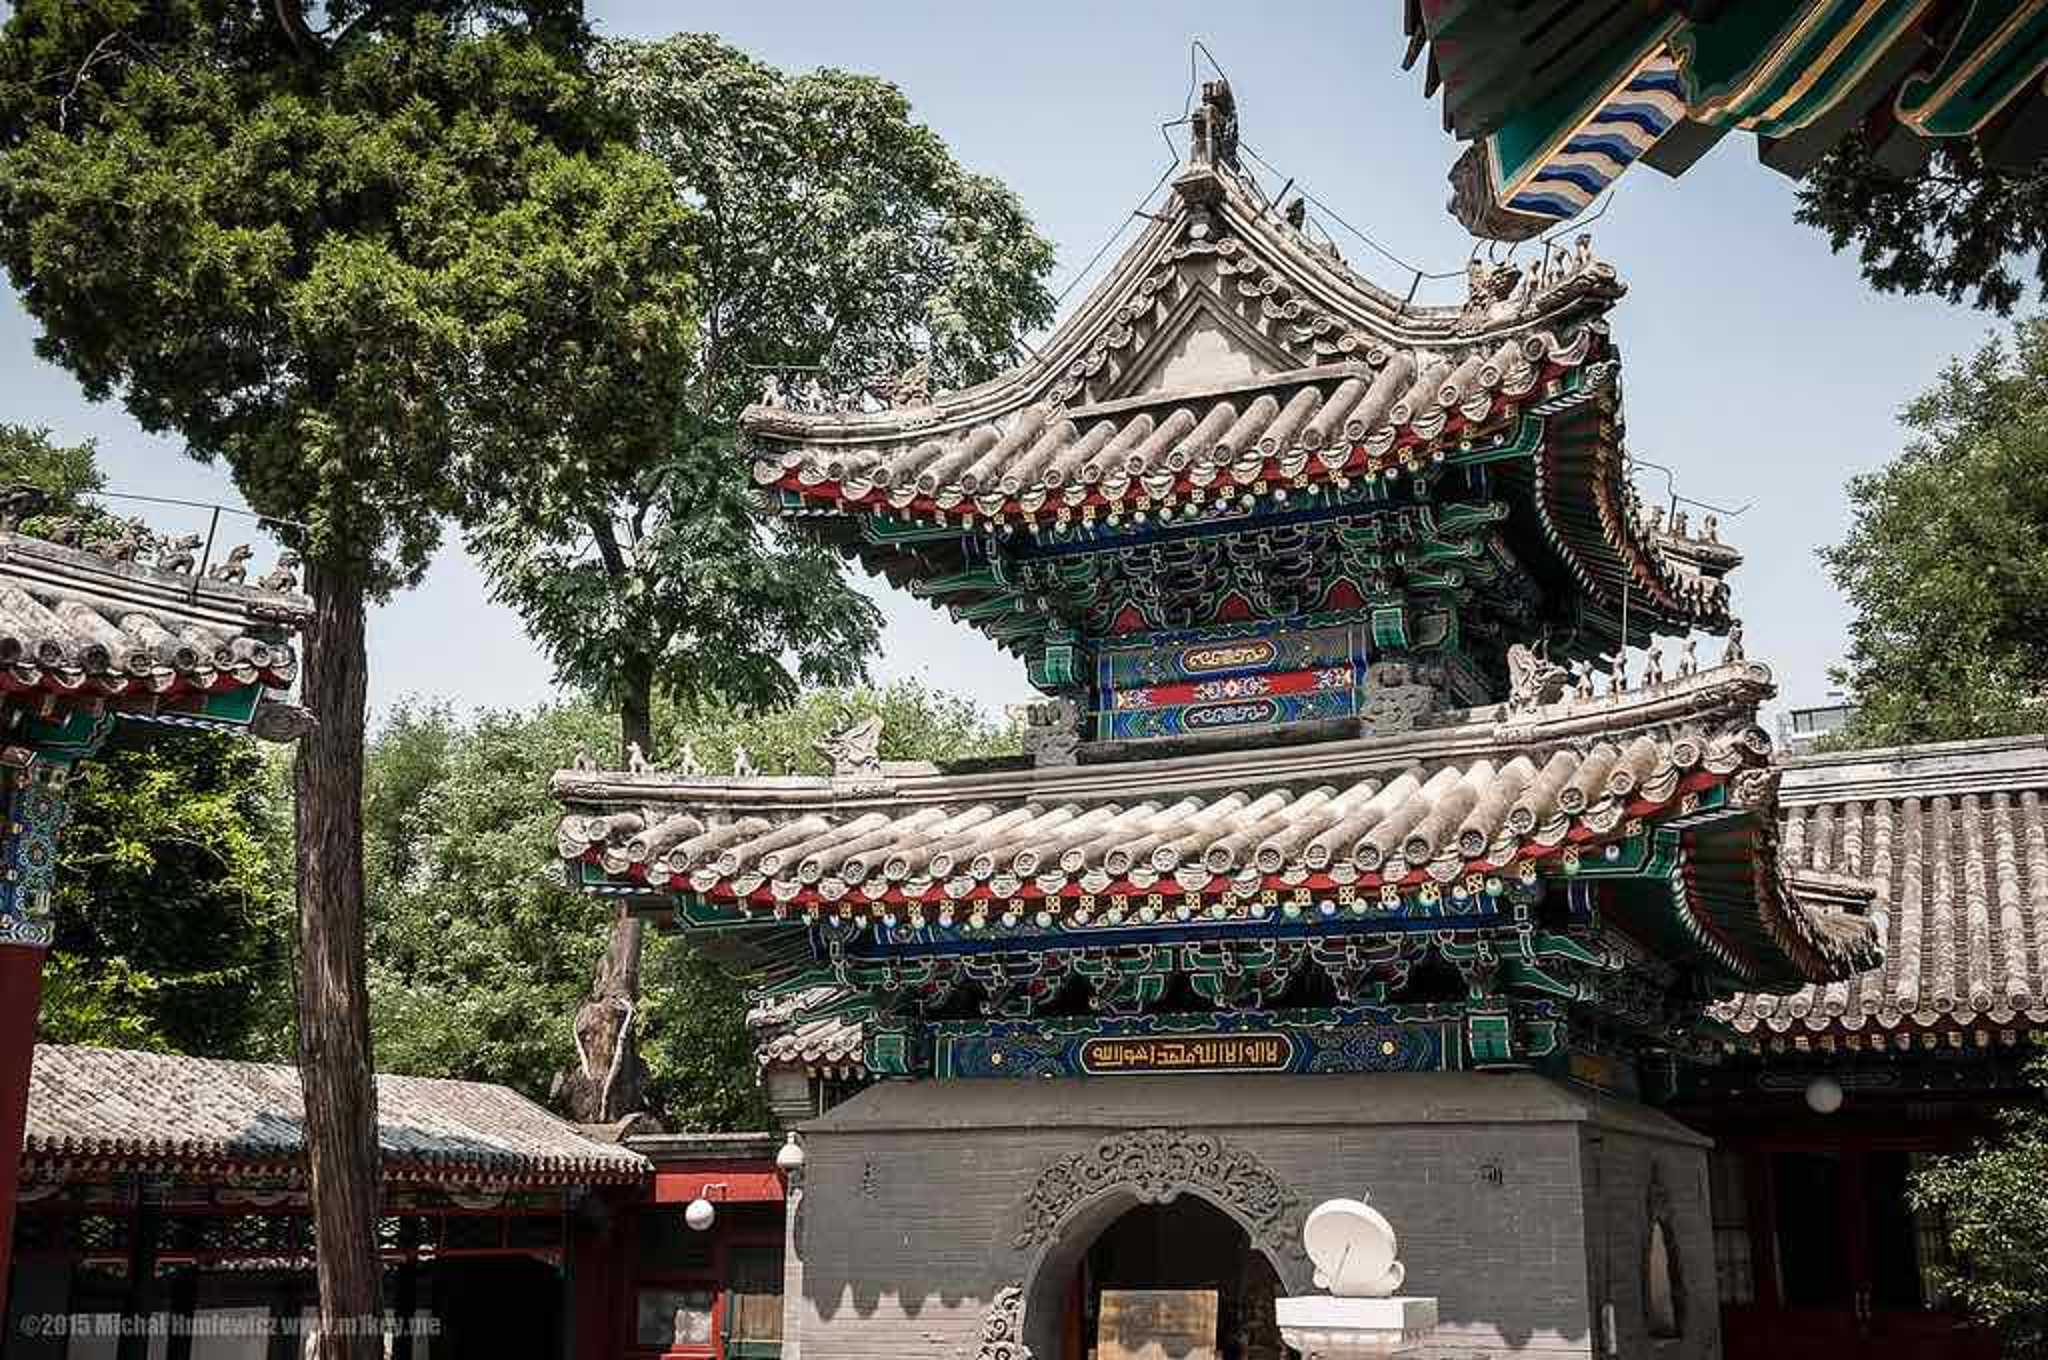 A must-visit if you are in Beijing